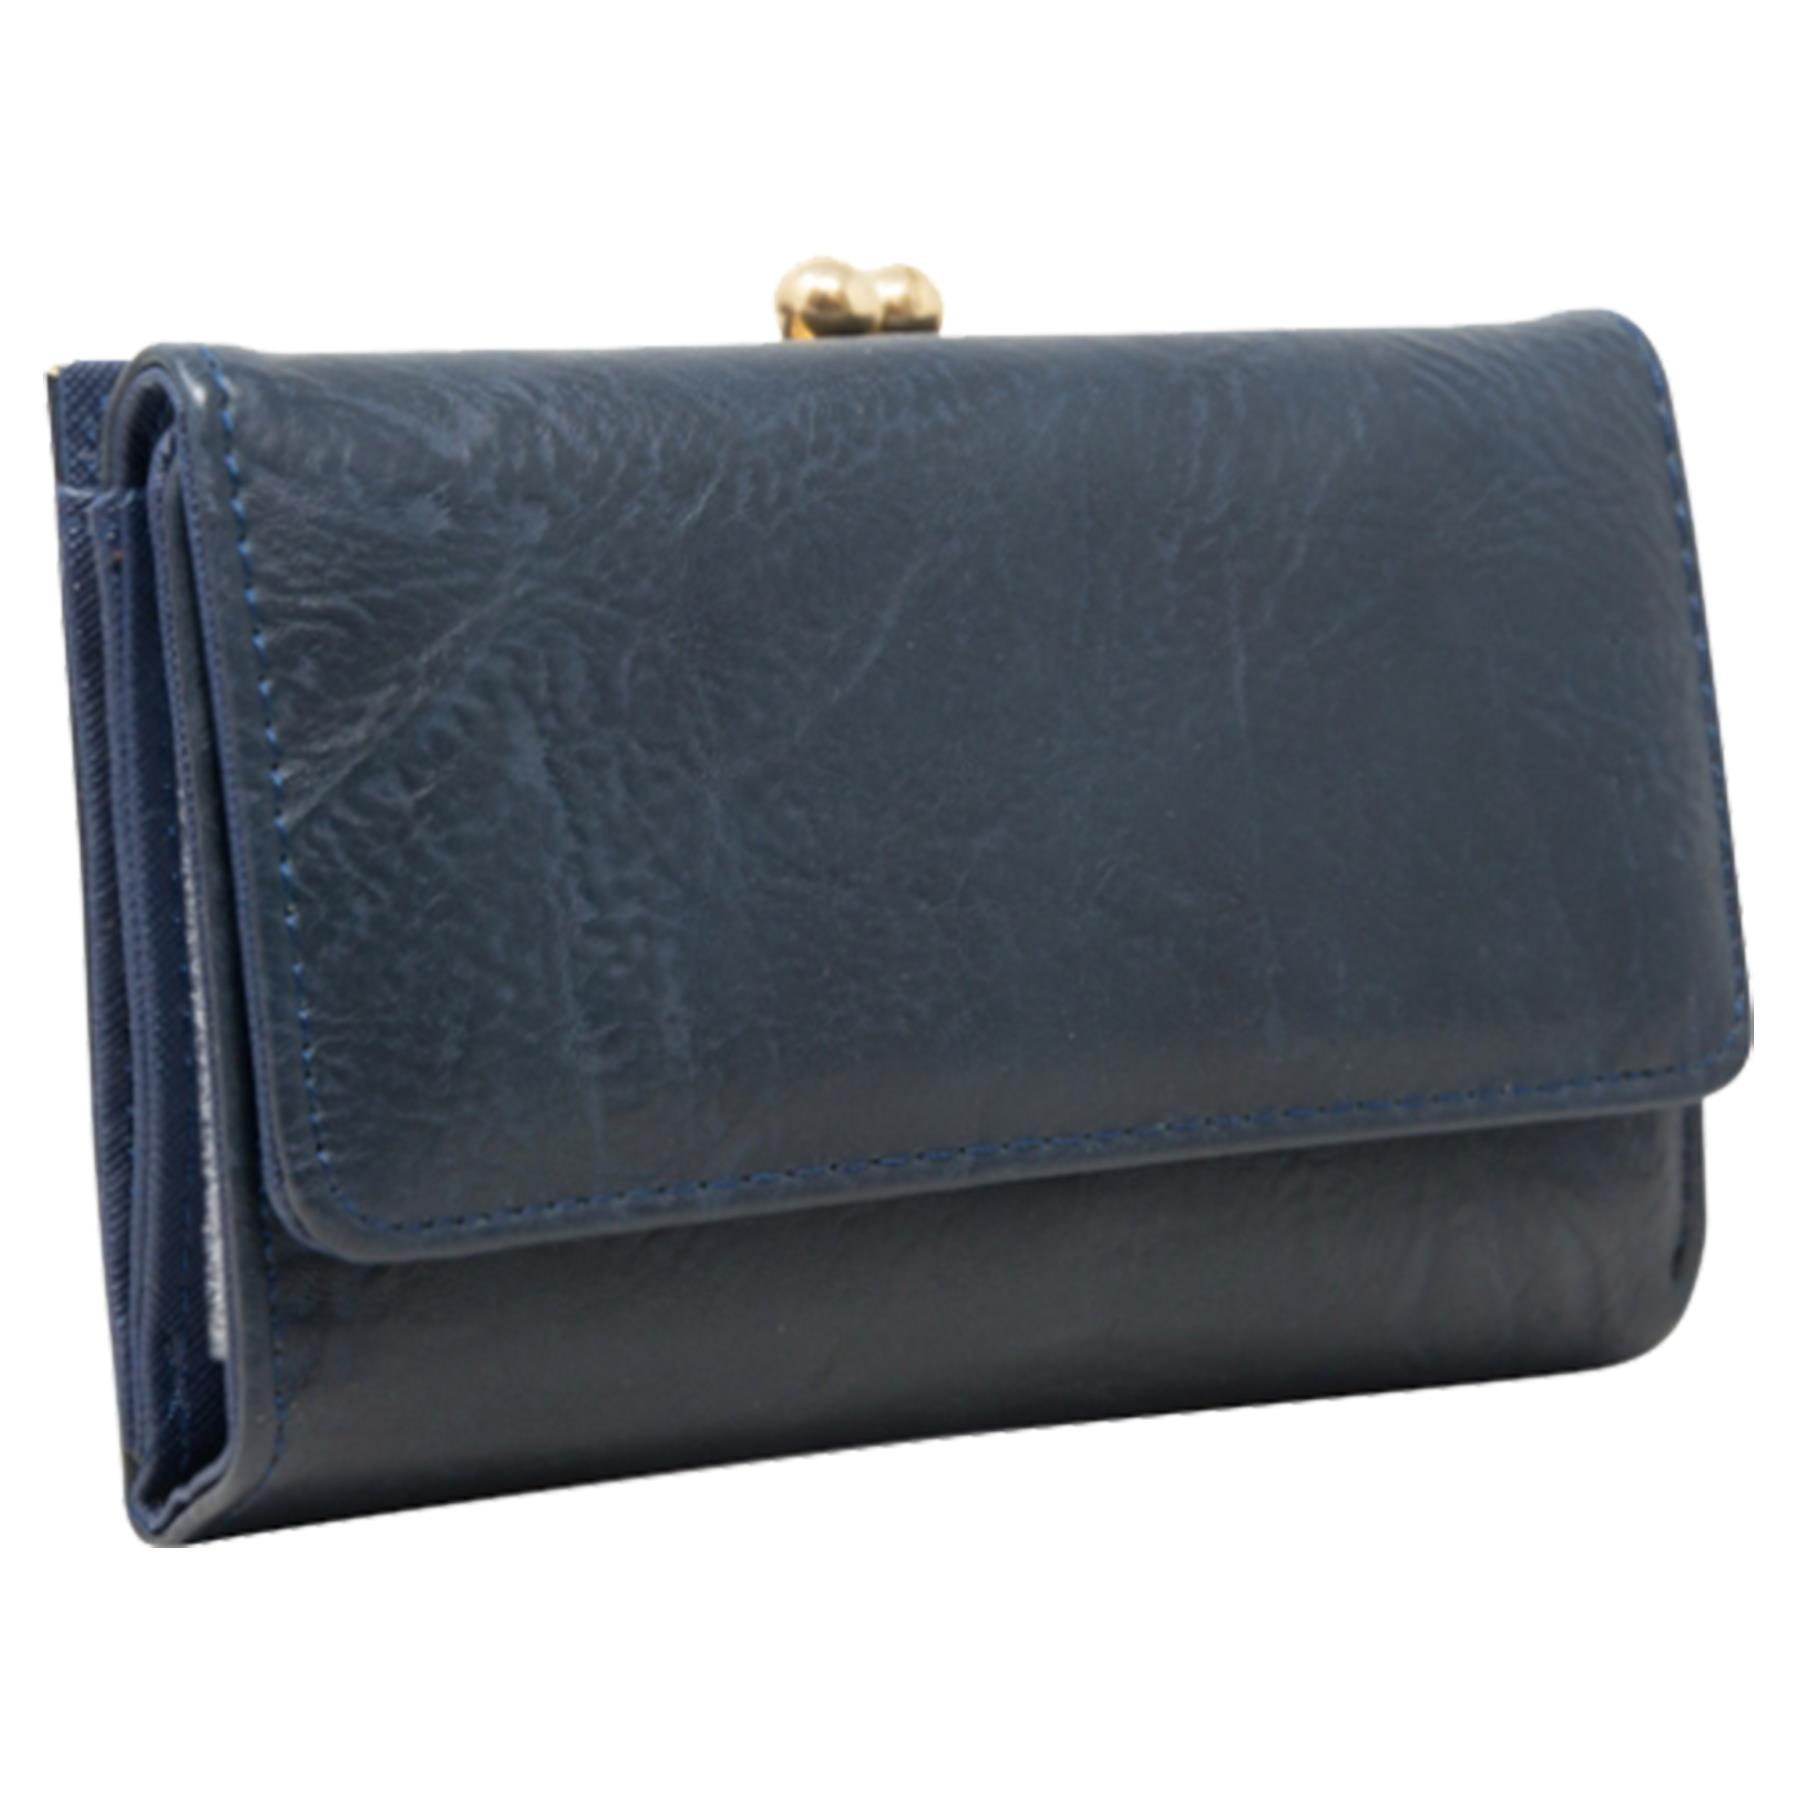 New-Synthetic-Leather-Kiss-Lock-Compartment-Ladies-Casual-Wallet-Purse thumbnail 7